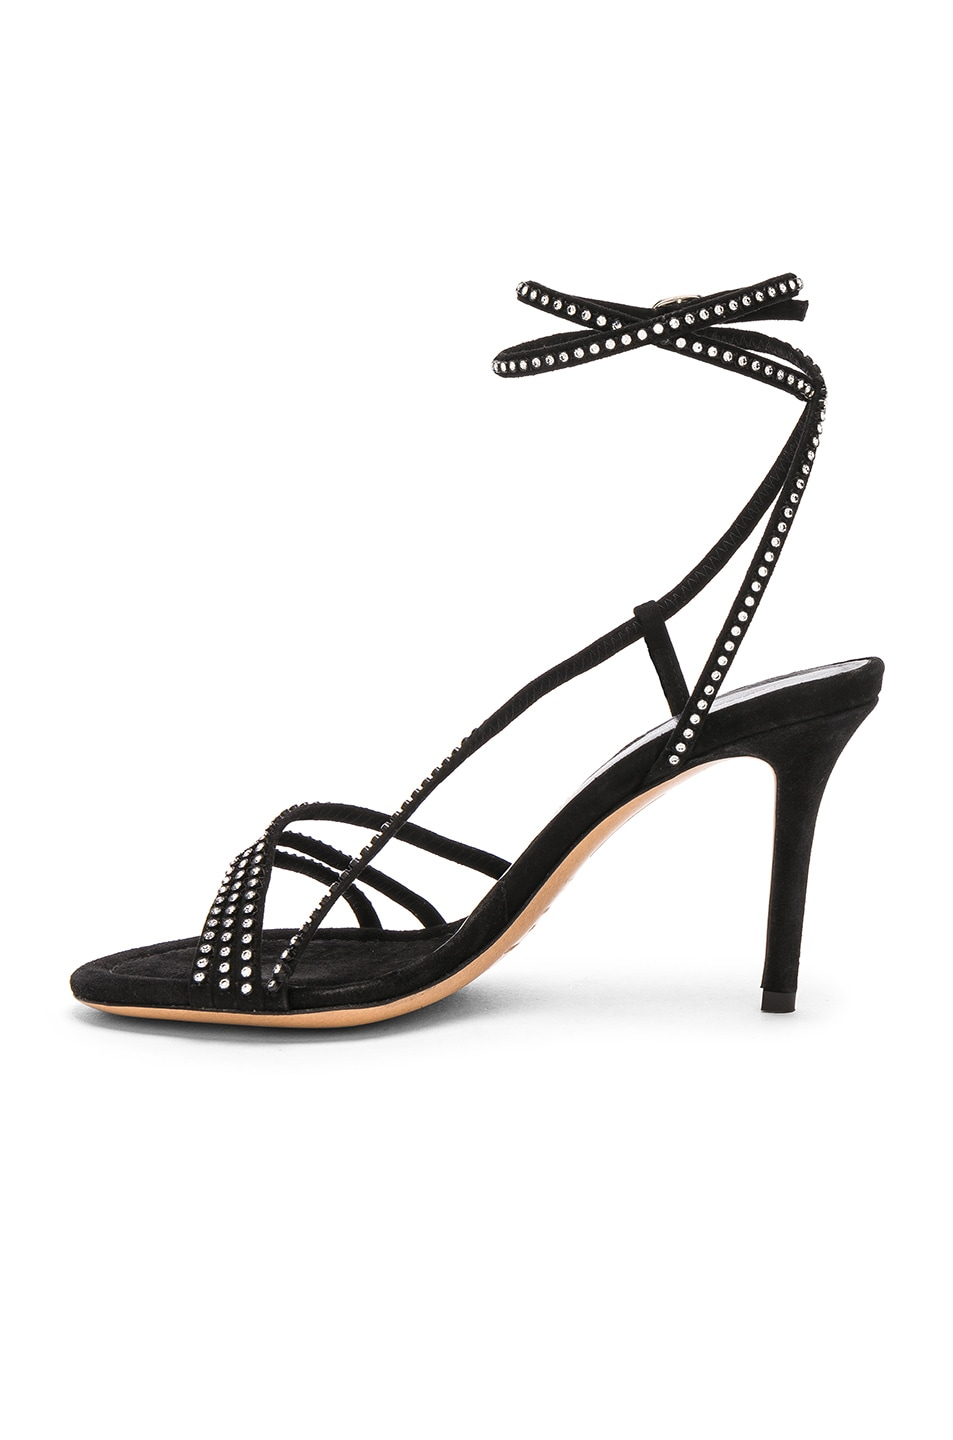 Image 5 of Isabel Marant Suede Amspee Sandals in Black